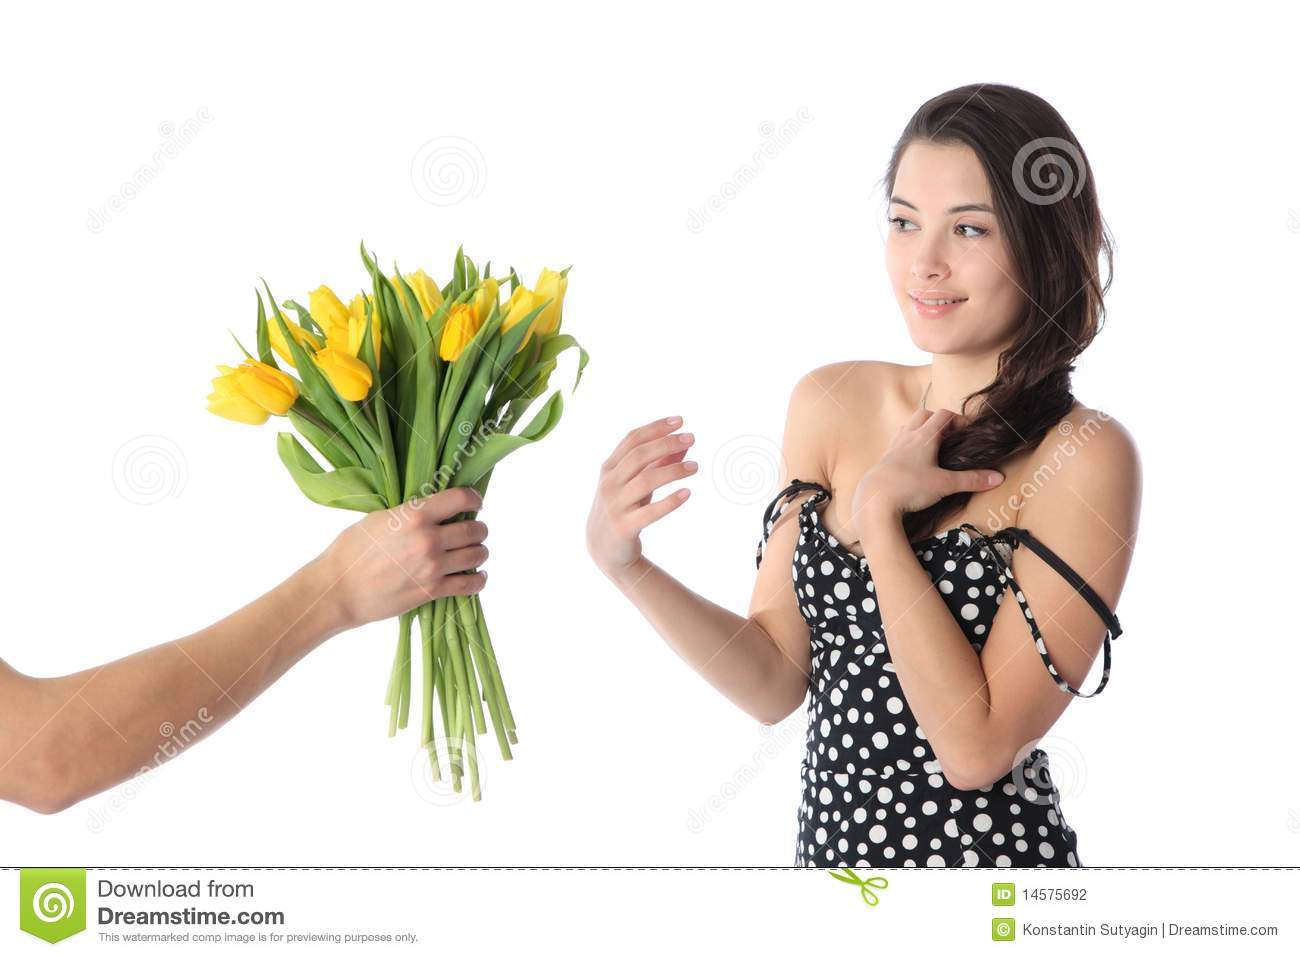 Receiving Flowers Quotes